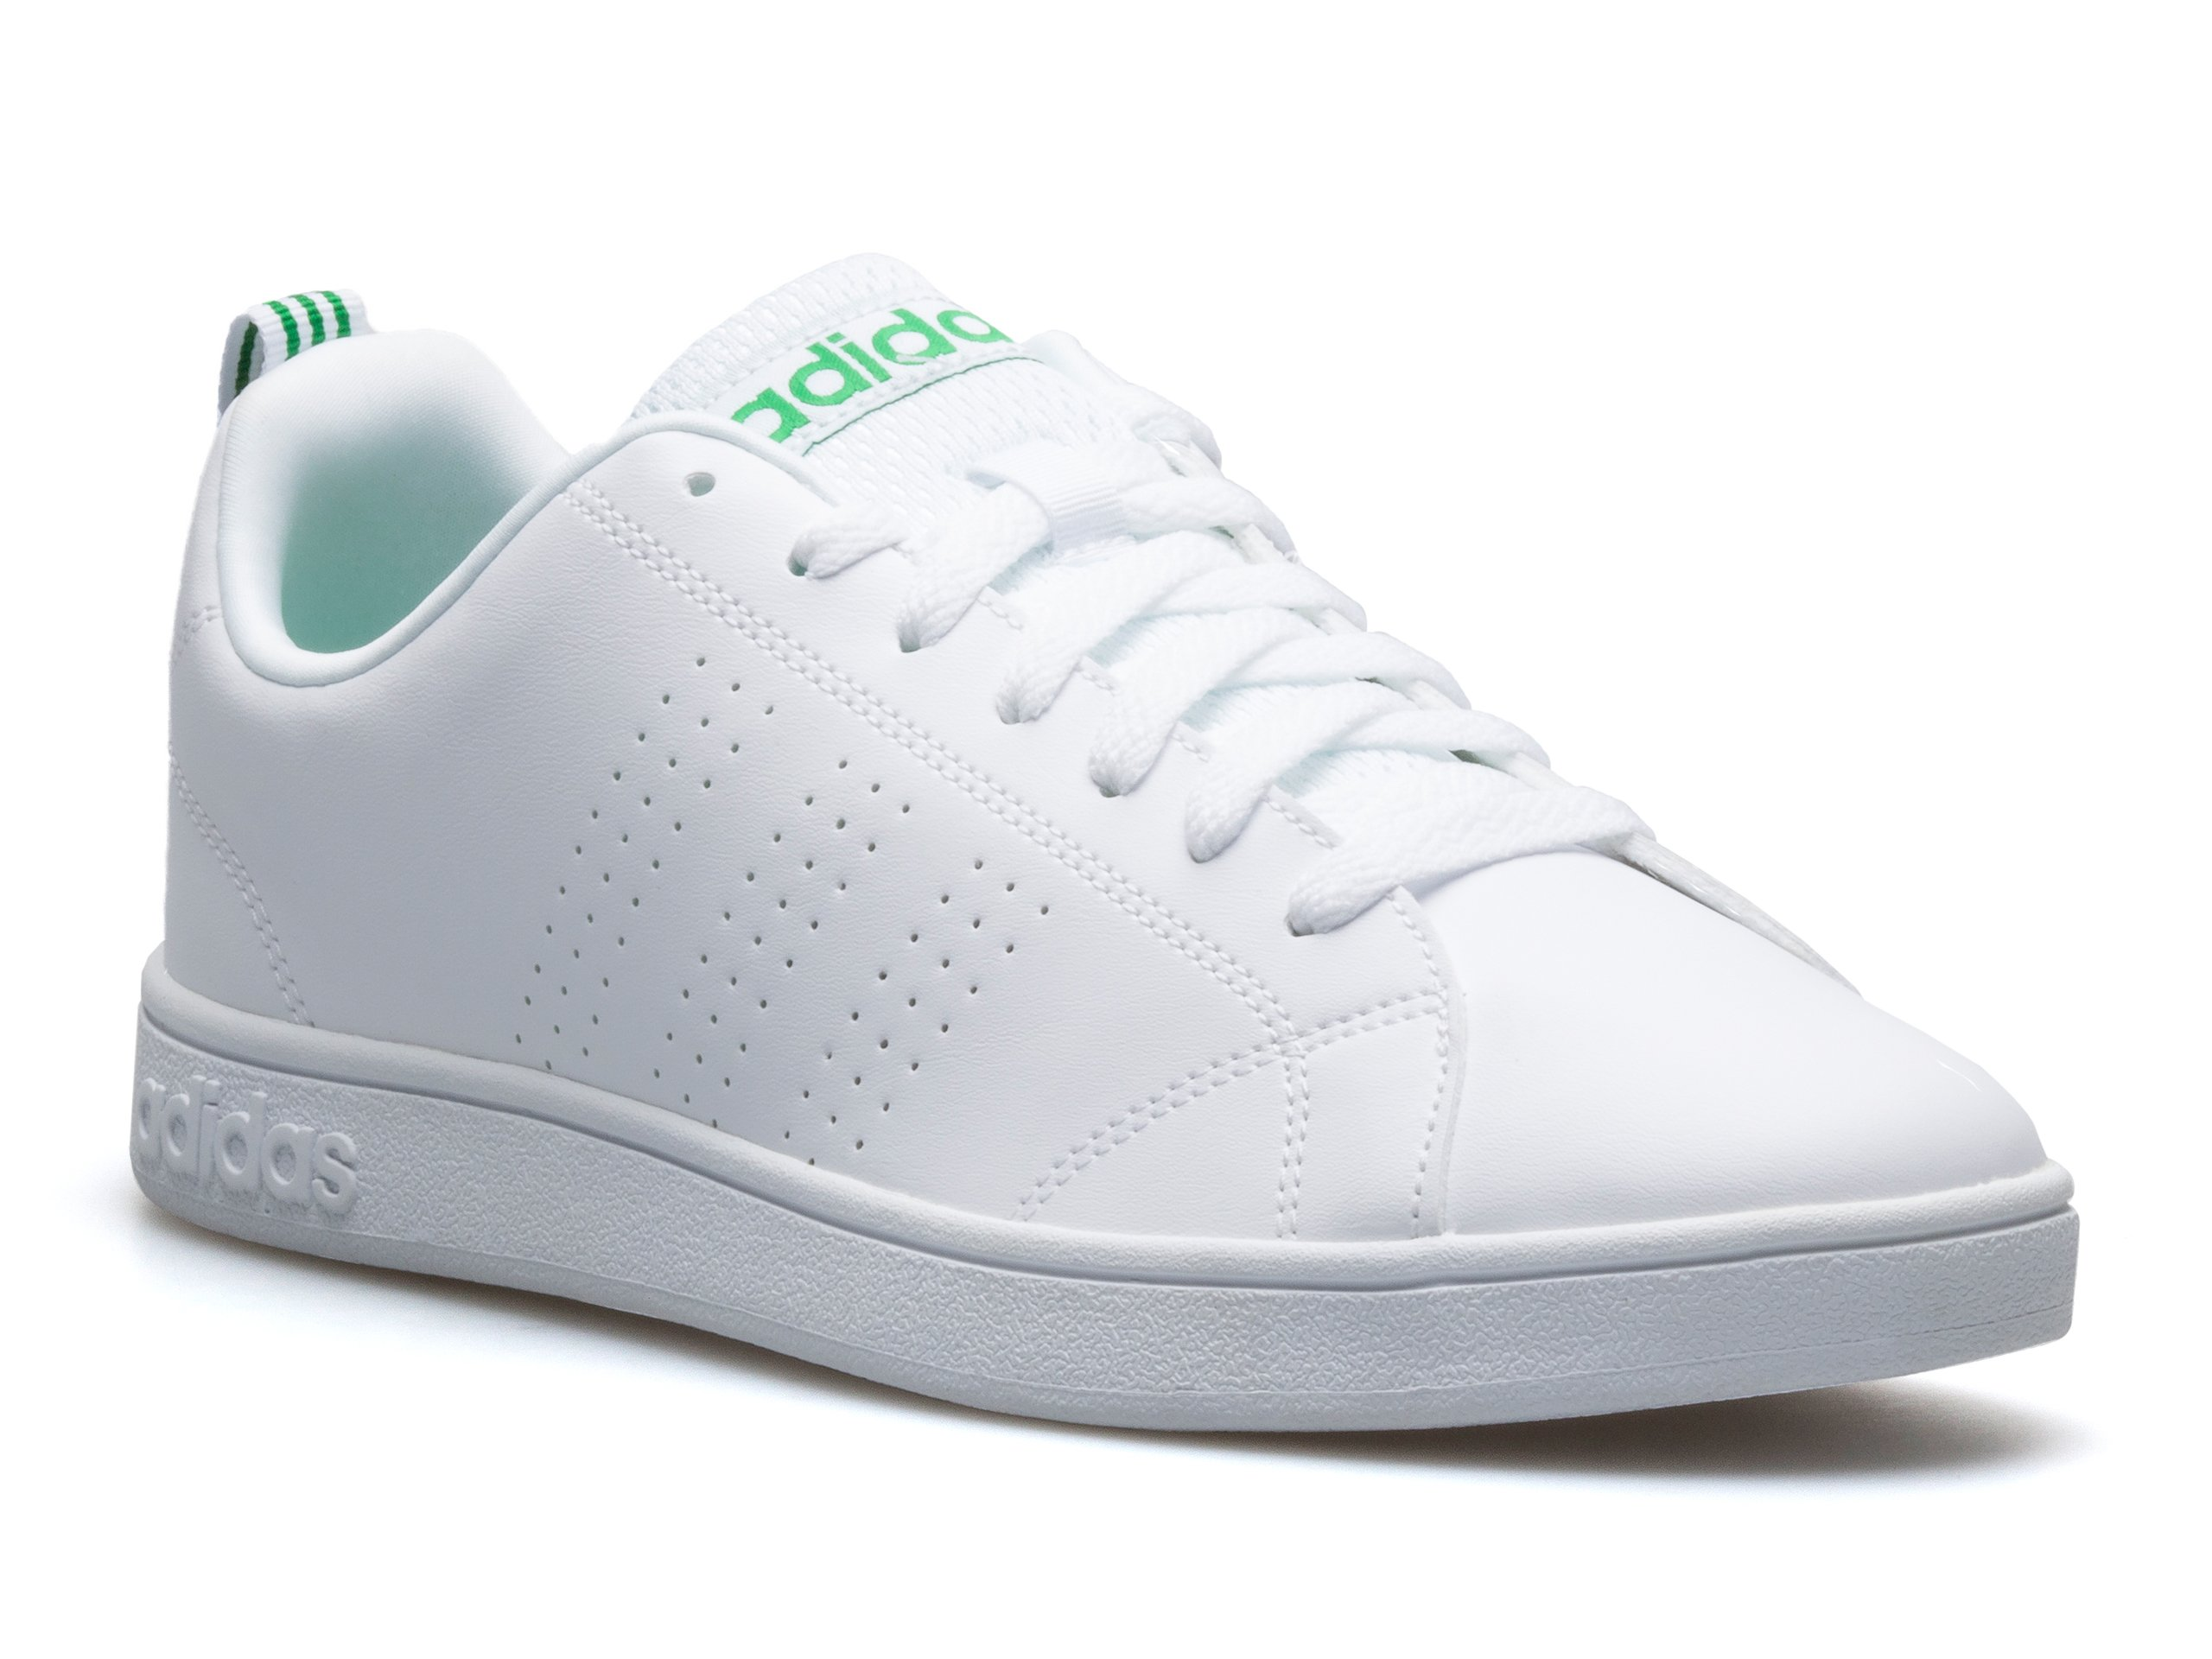 Buty adidas ADVANTAGE CLEAN VS F99251 r. 46 2 3 - 6889939523 ... da2d74edc71f0